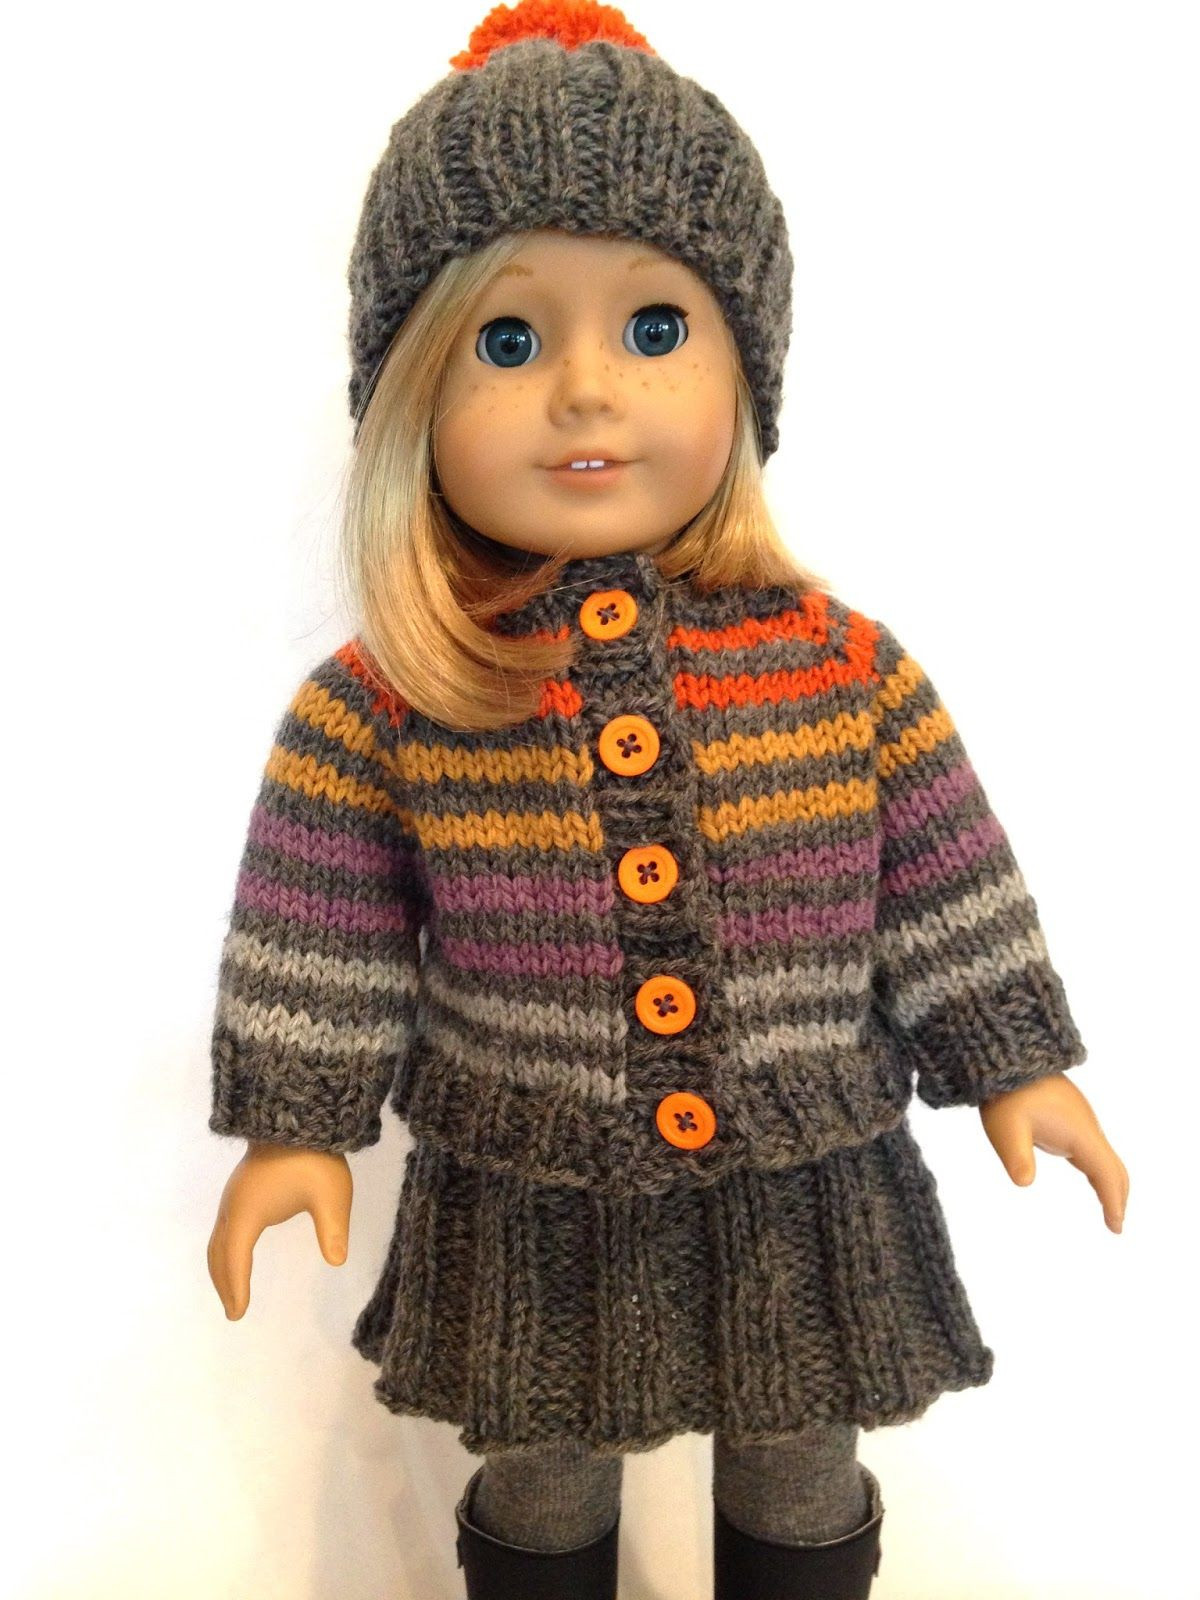 Elegant Knitting Pattern for Doll Hat Sweater and Skirt Free Knitting Patterns for American Girl Dolls Of Delightful 41 Models Free Knitting Patterns for American Girl Dolls